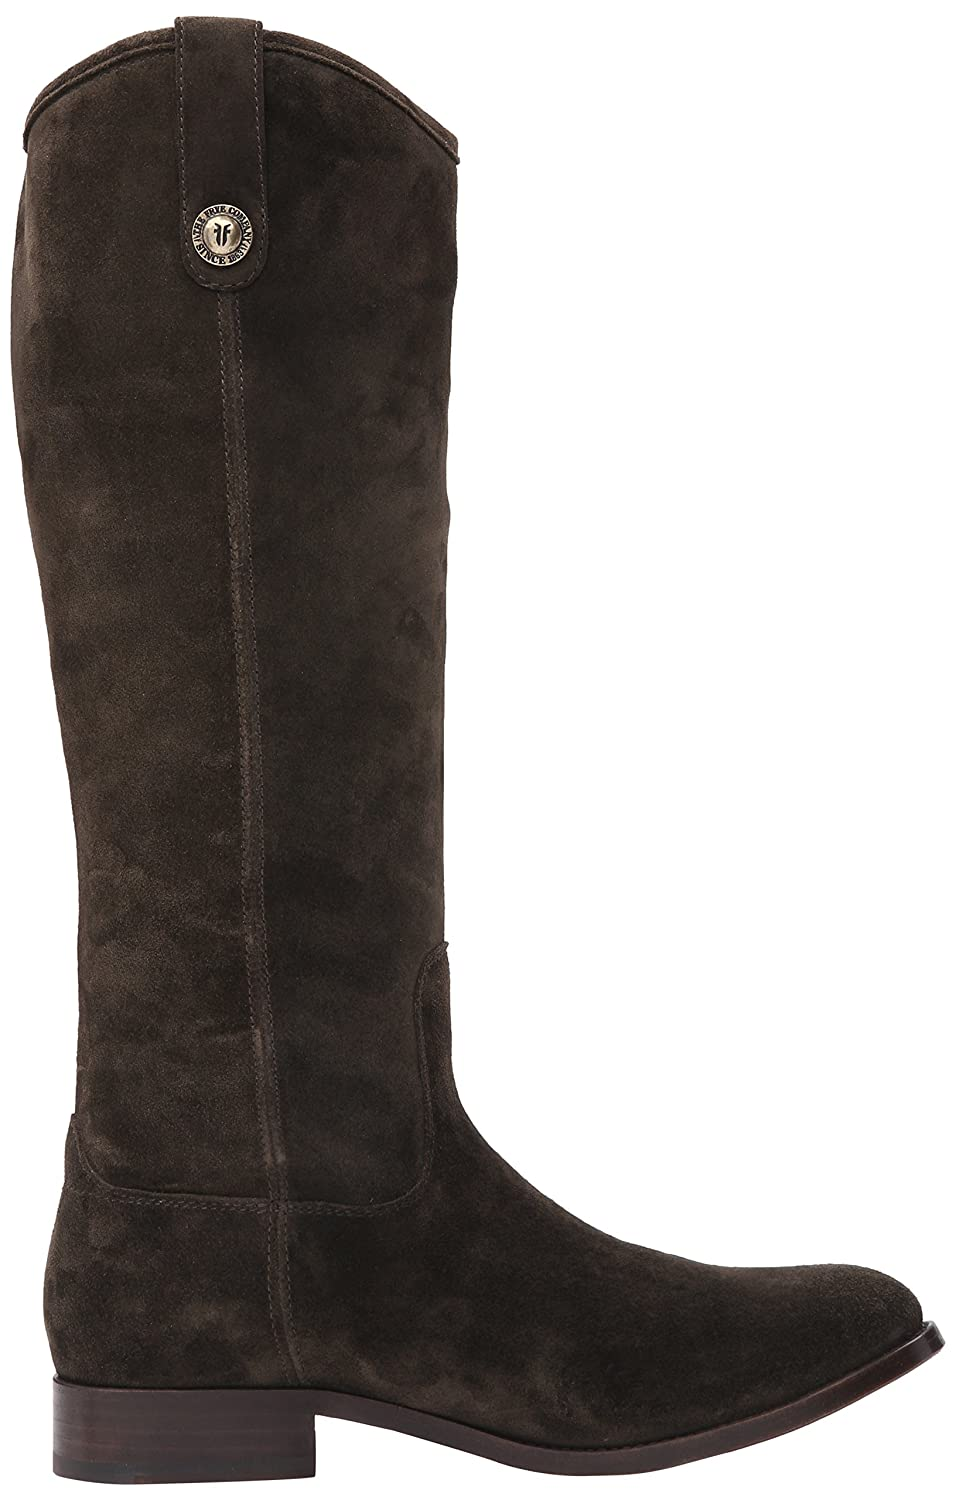 FRYE Women's Melissa Button Boot B0193XNV28 6 B(M) US|Fatigue-77173